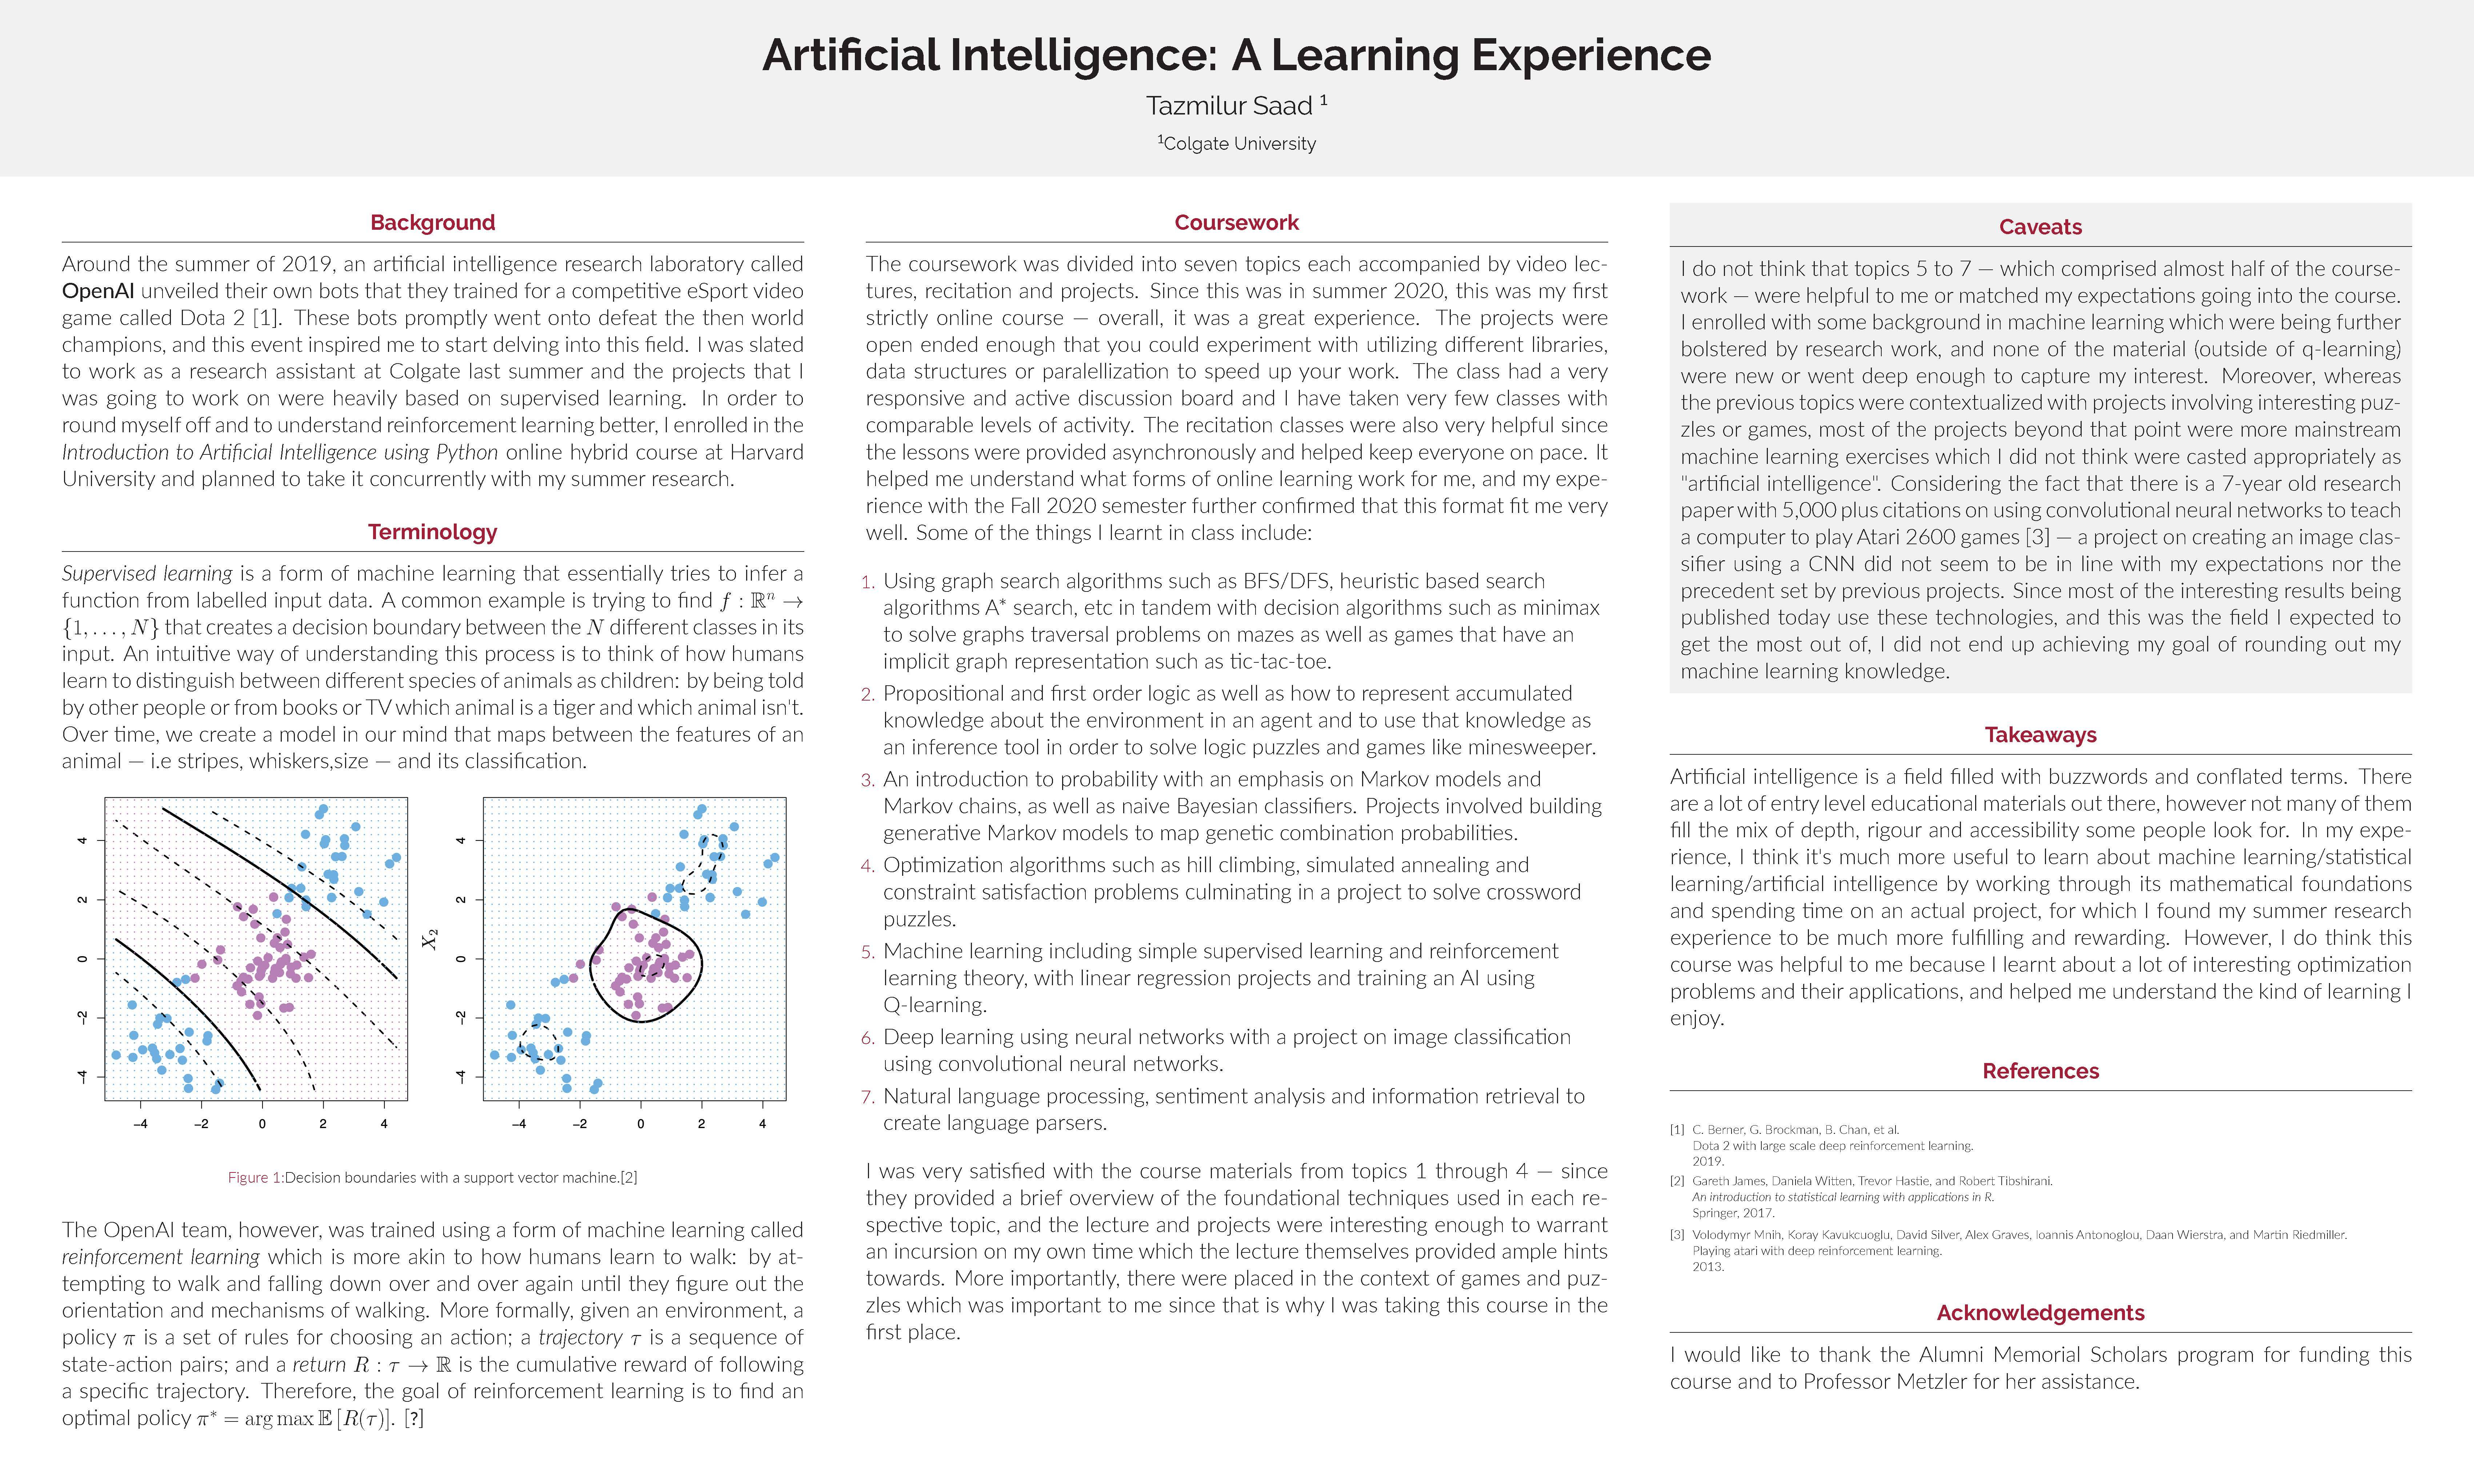 Tazmilur Saad '22: Artificial Intelligence - A Learning Experience